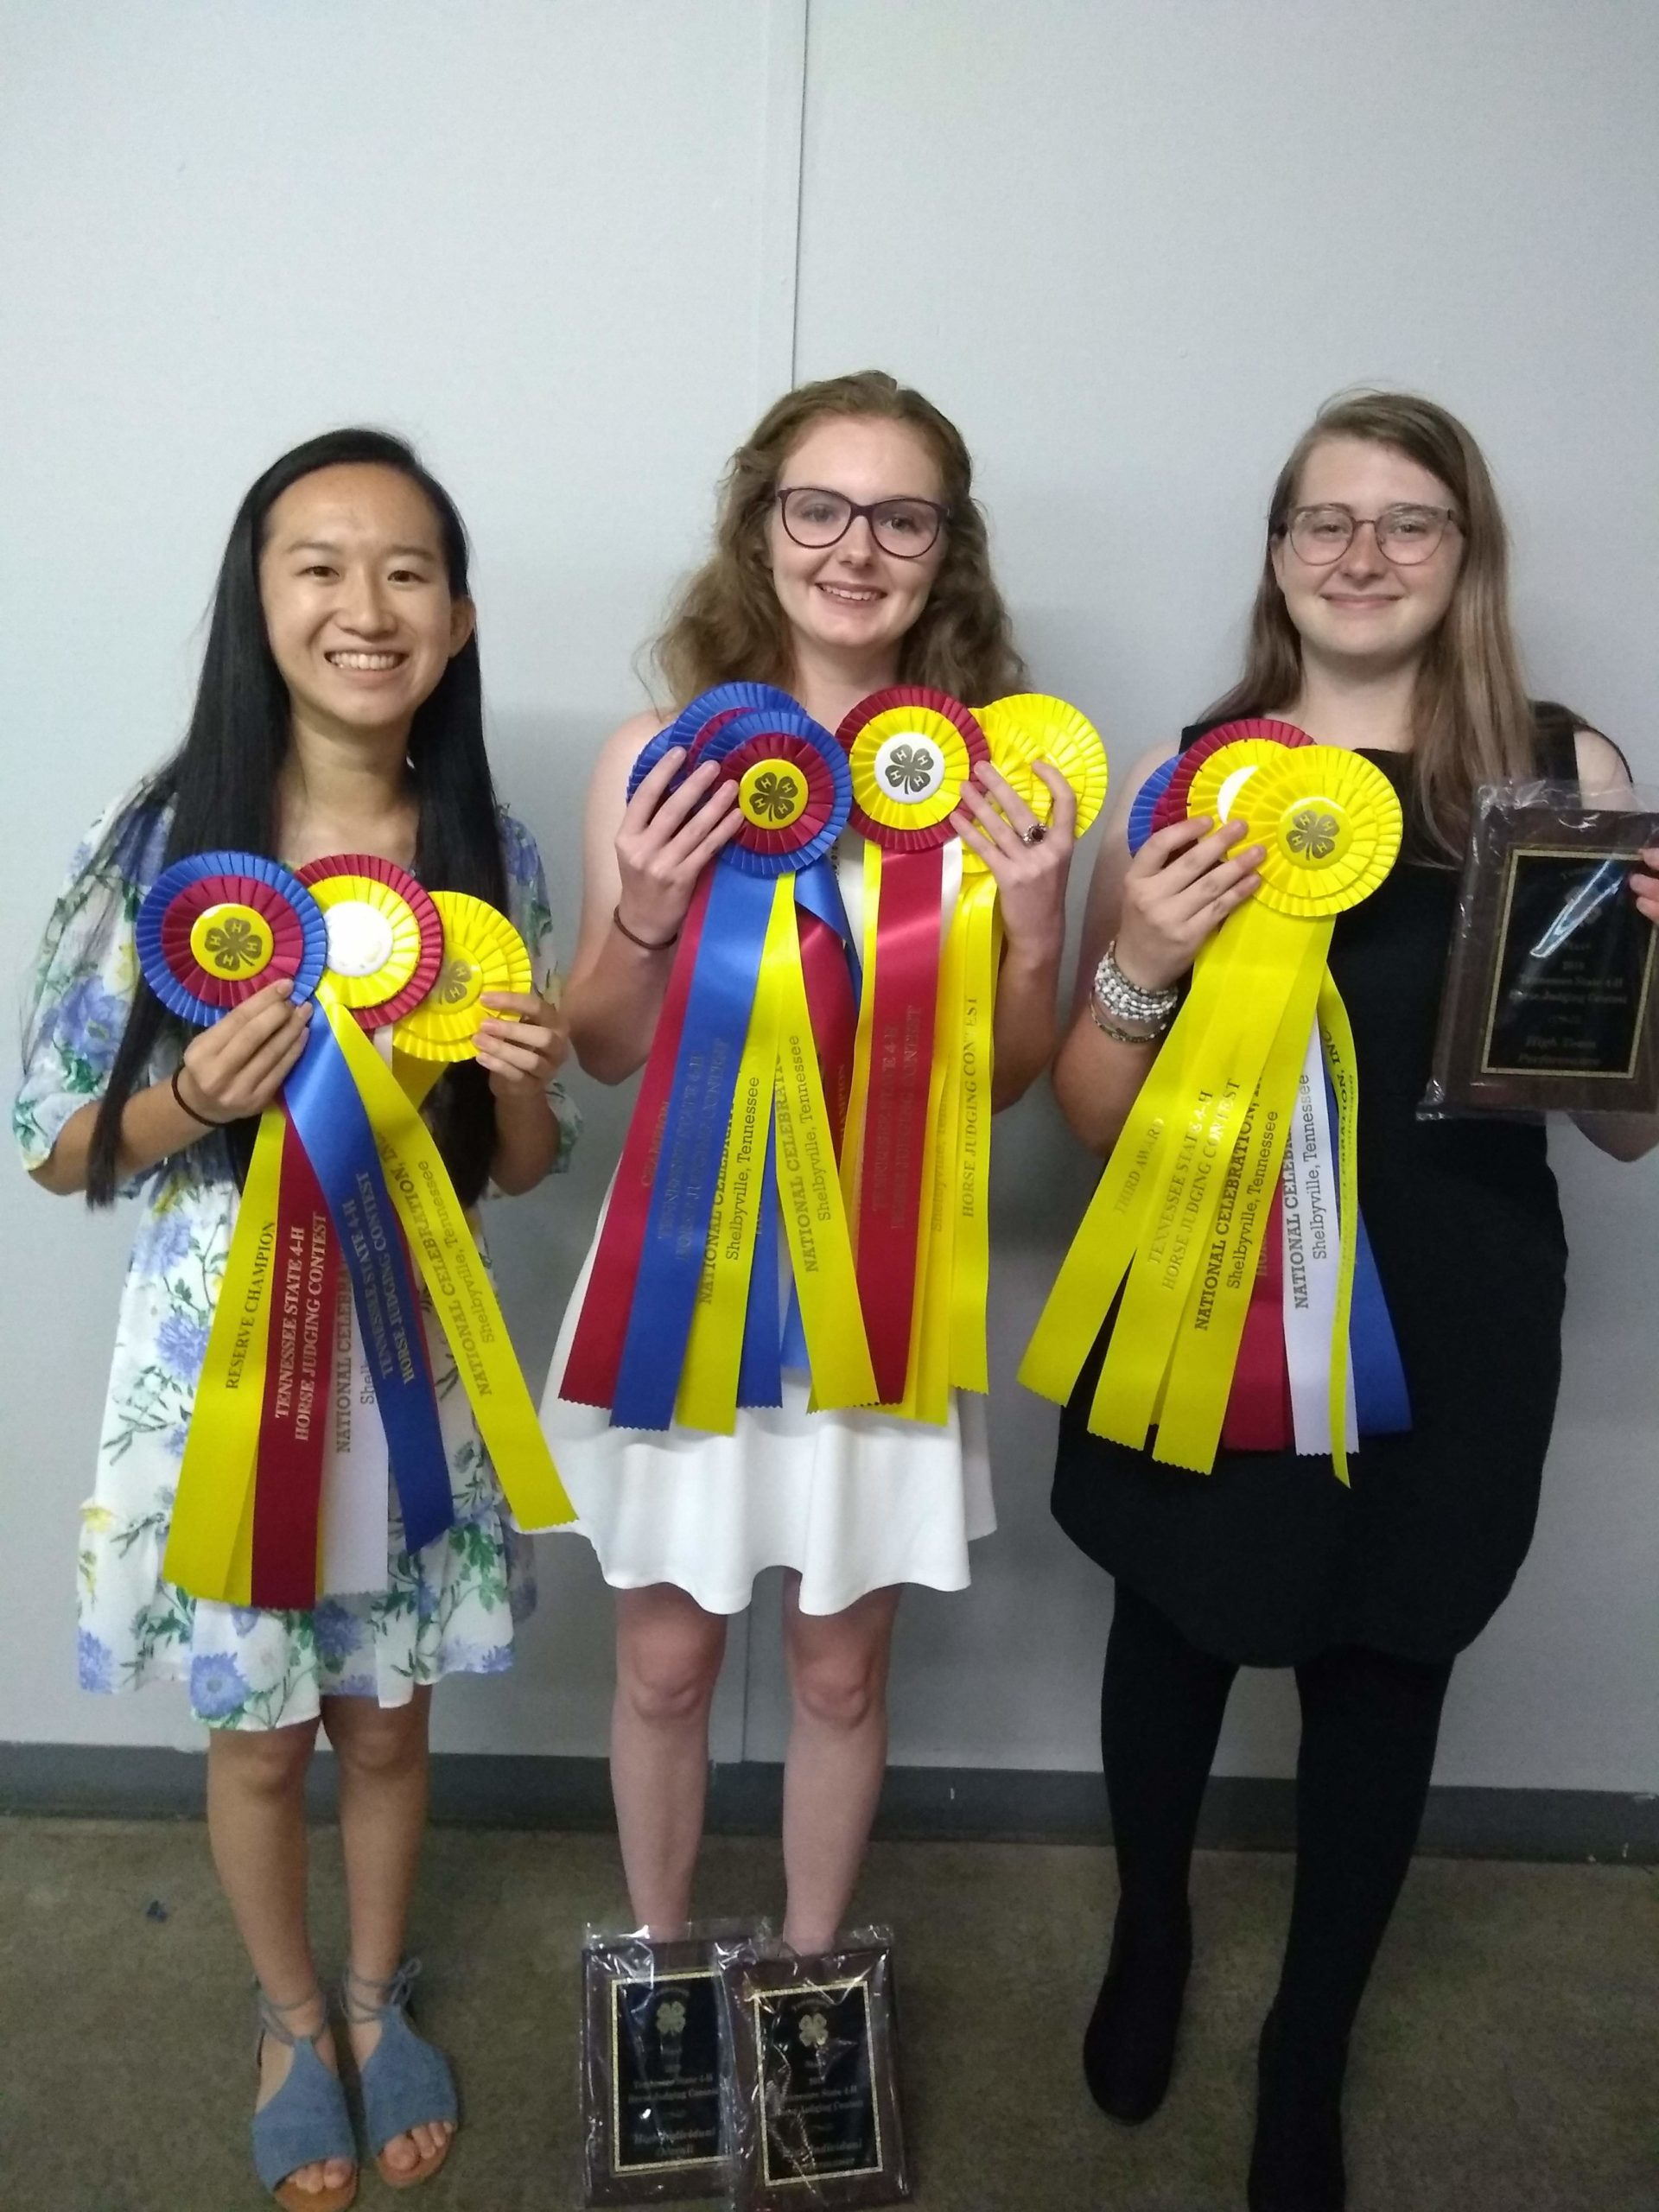 youth showing horse judging ribbons